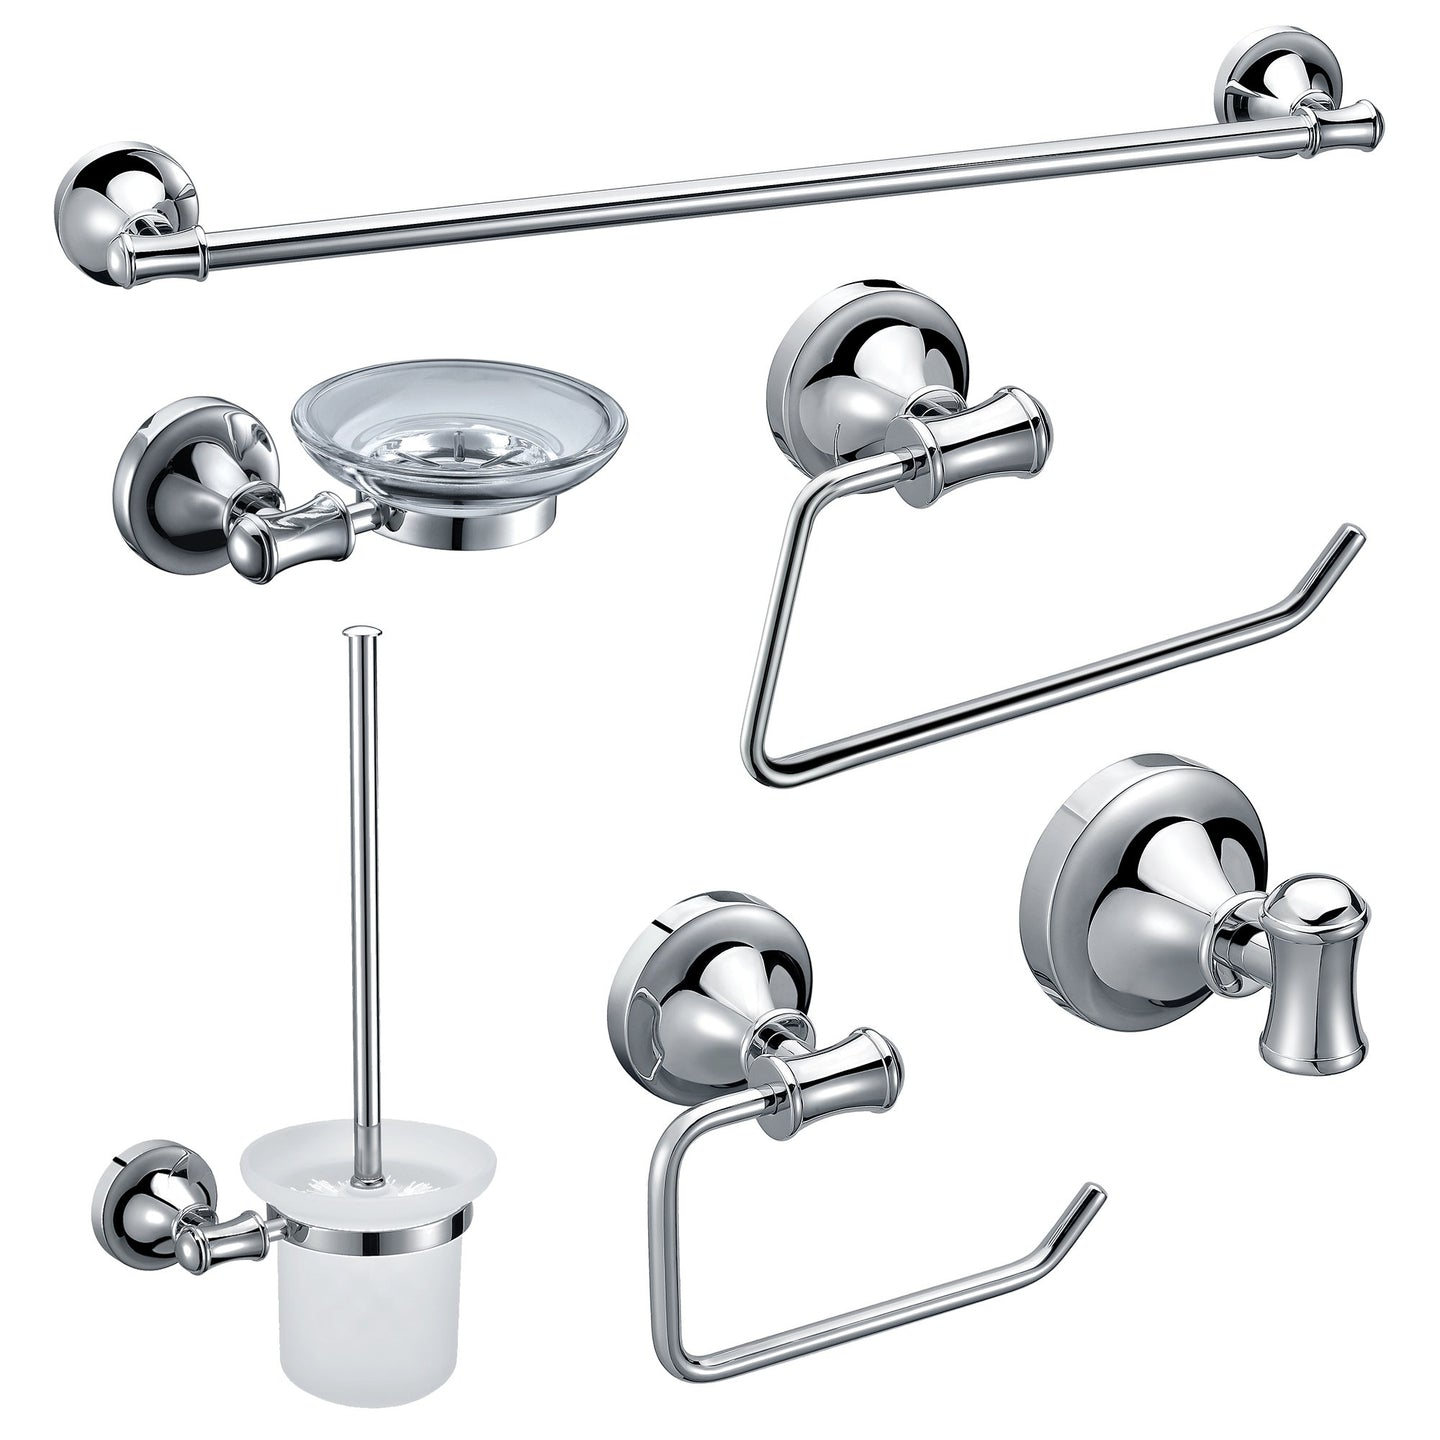 ALFI brand AB9521 6 Piece Matching Bathroom Accessory Set